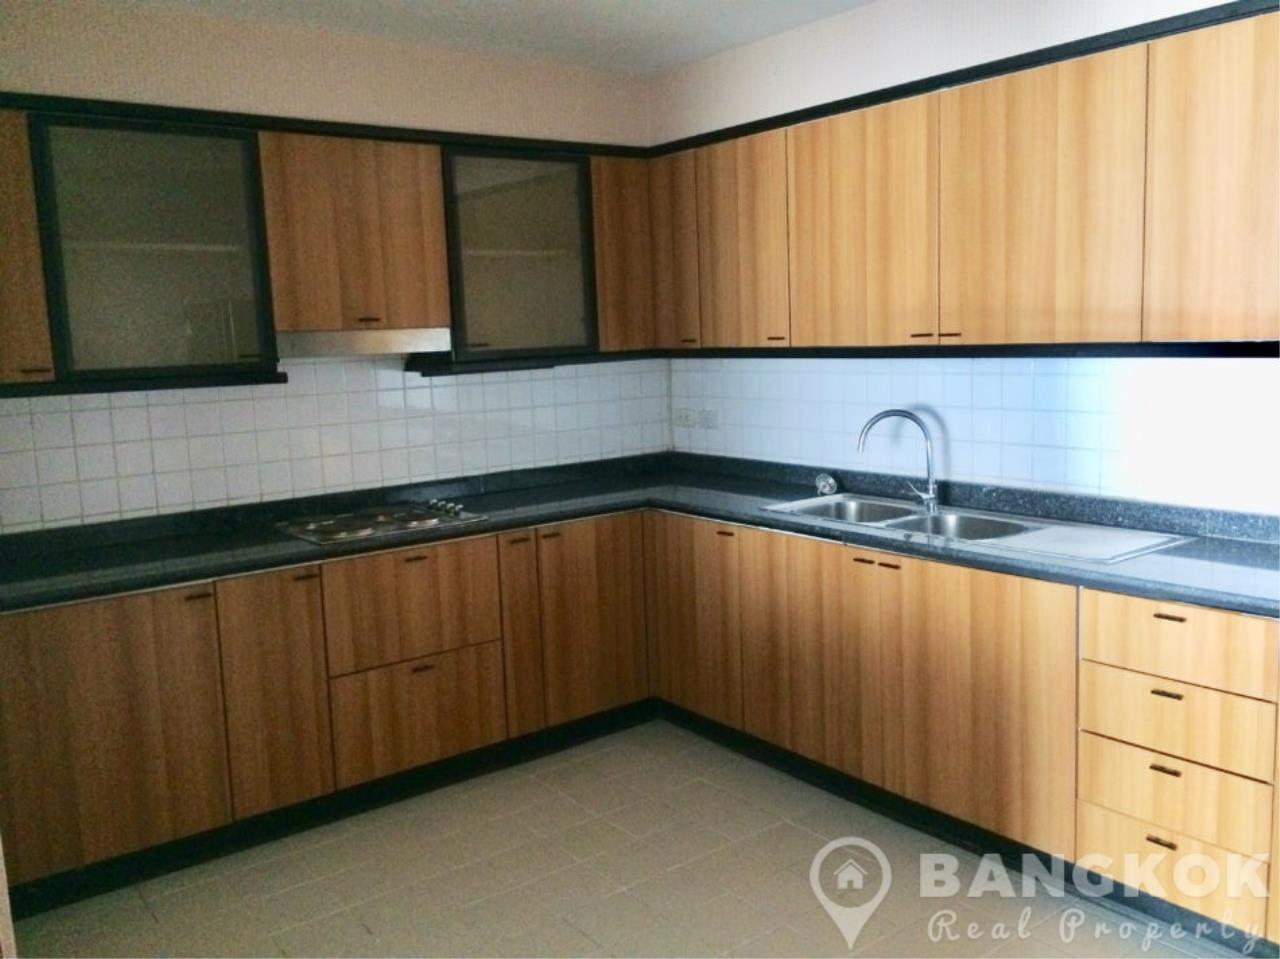 Bangkok Real Property Agency's Casa Viva | Very Spacious 3 Bed 3 Bath Condo in Ekkamai 7